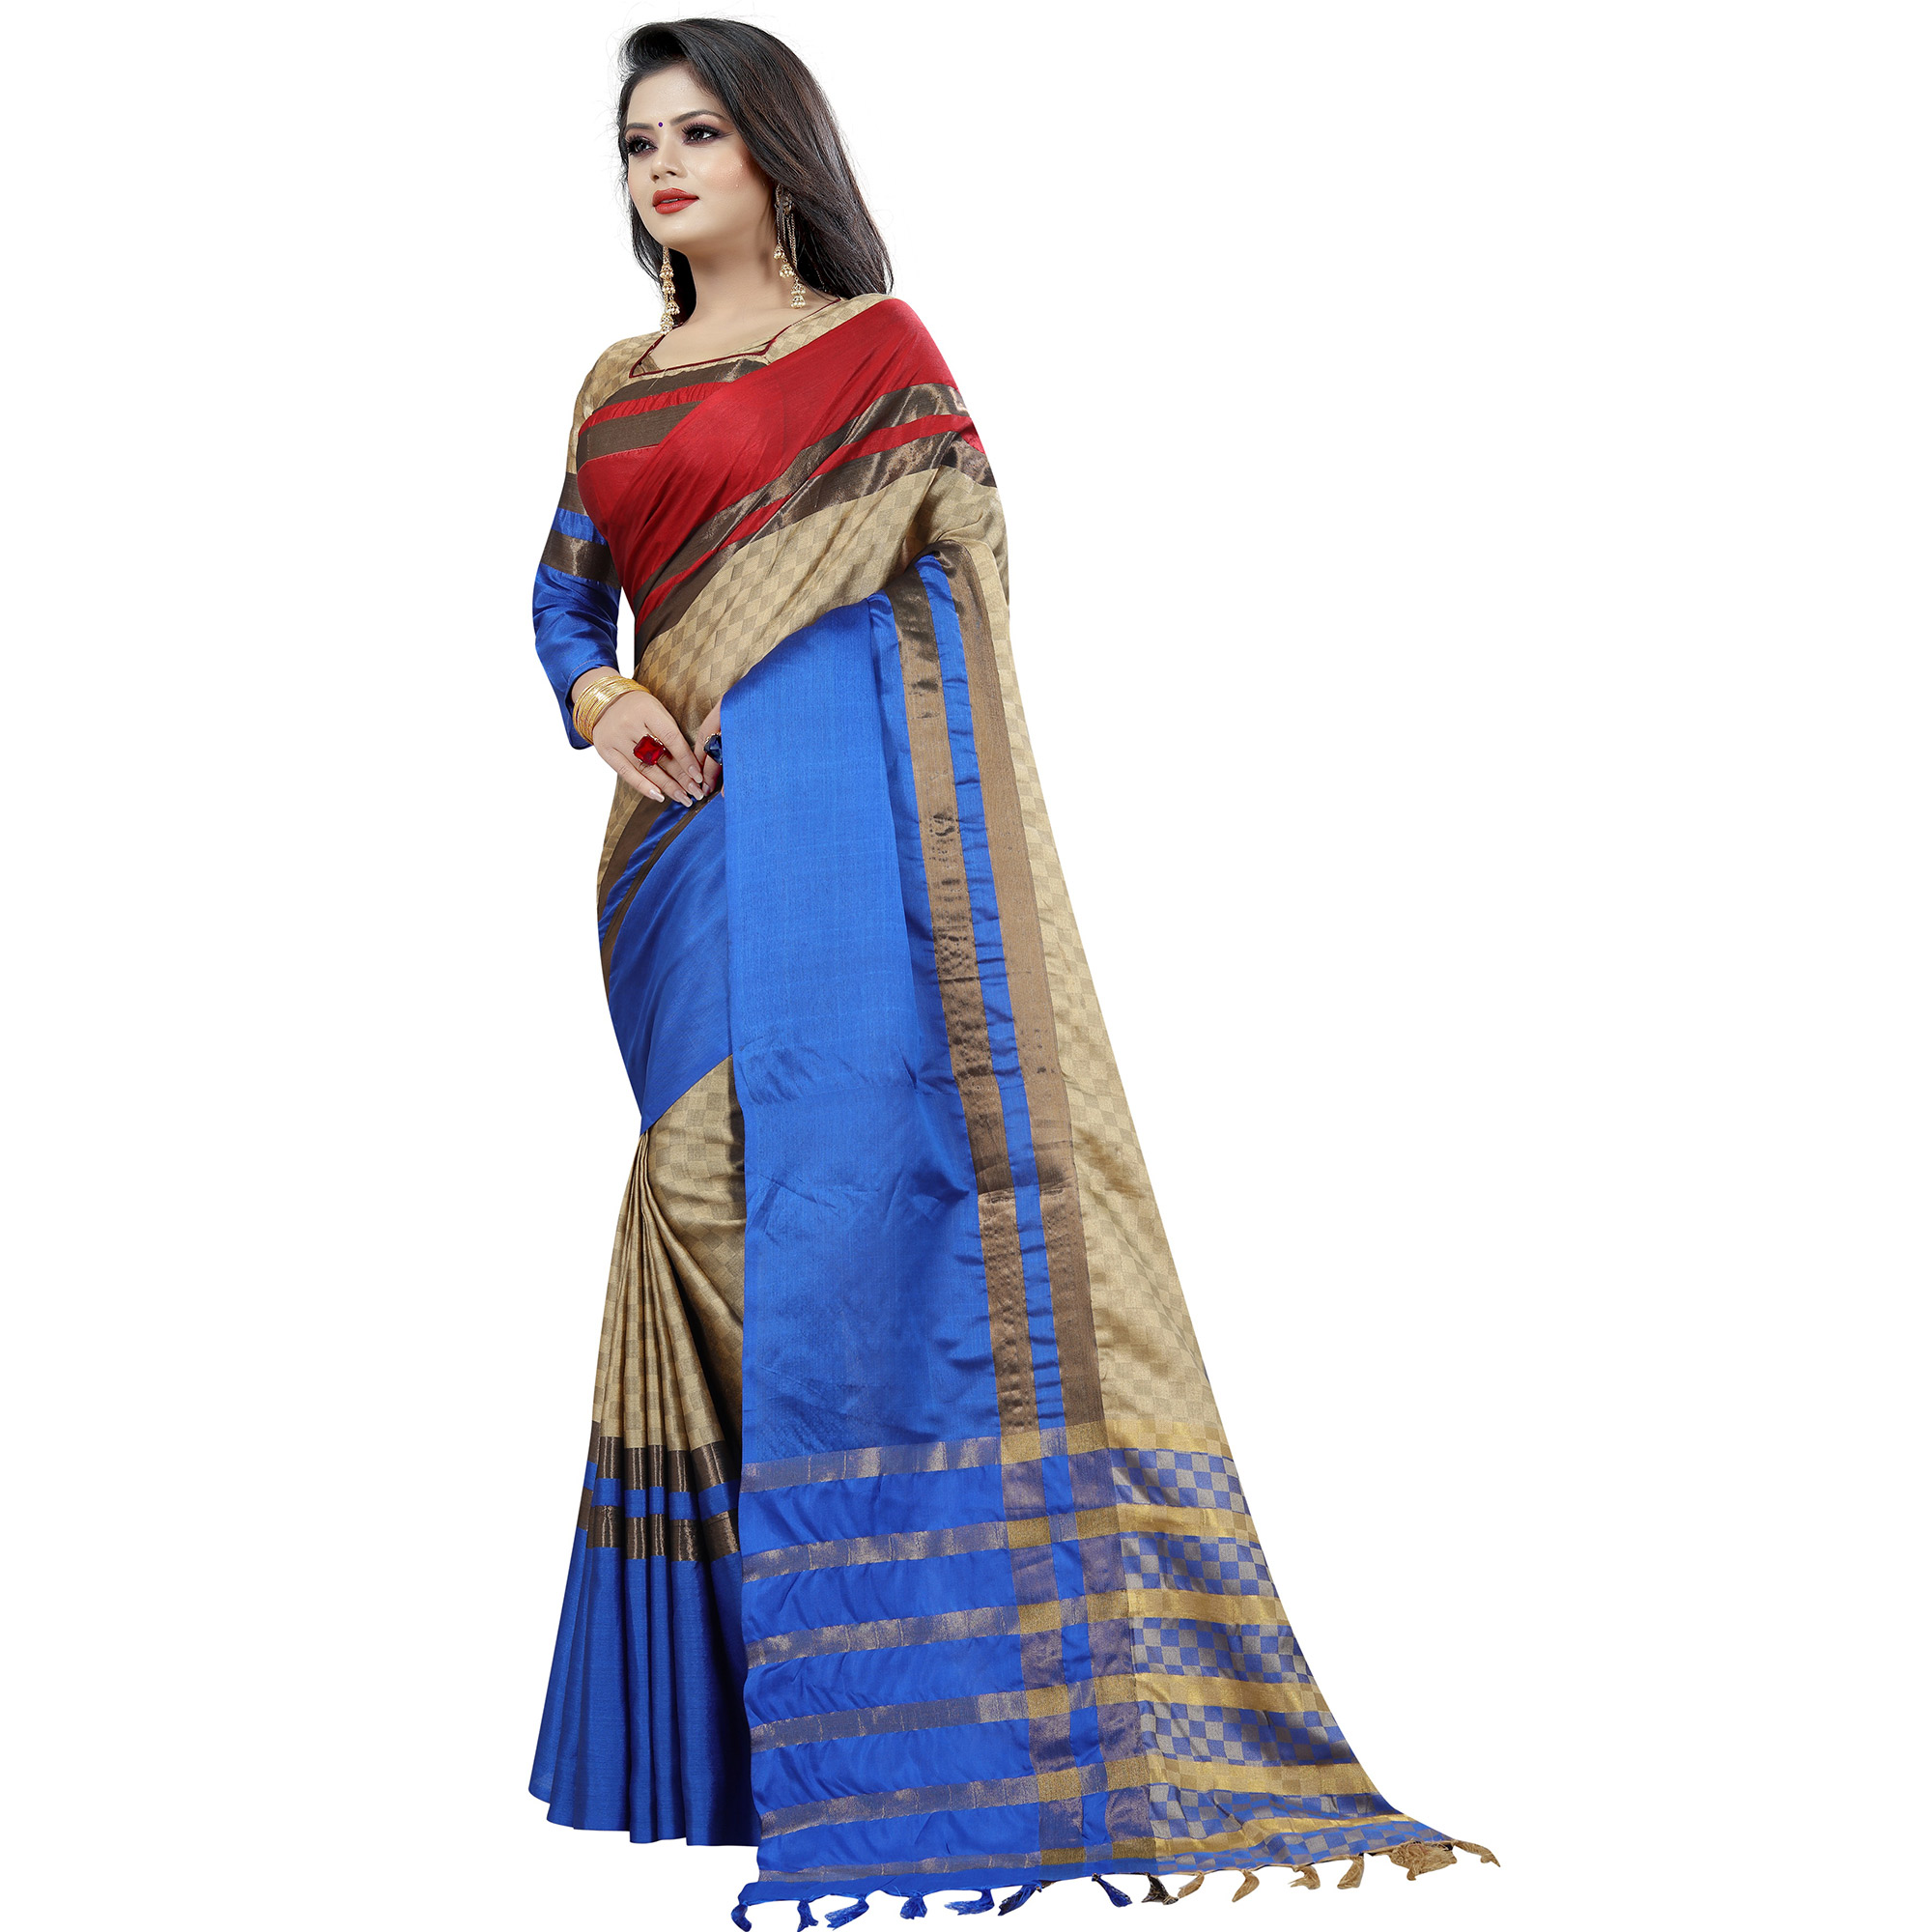 Magnetic Chiku-Blue Colored Festive Wear Cotton Saree